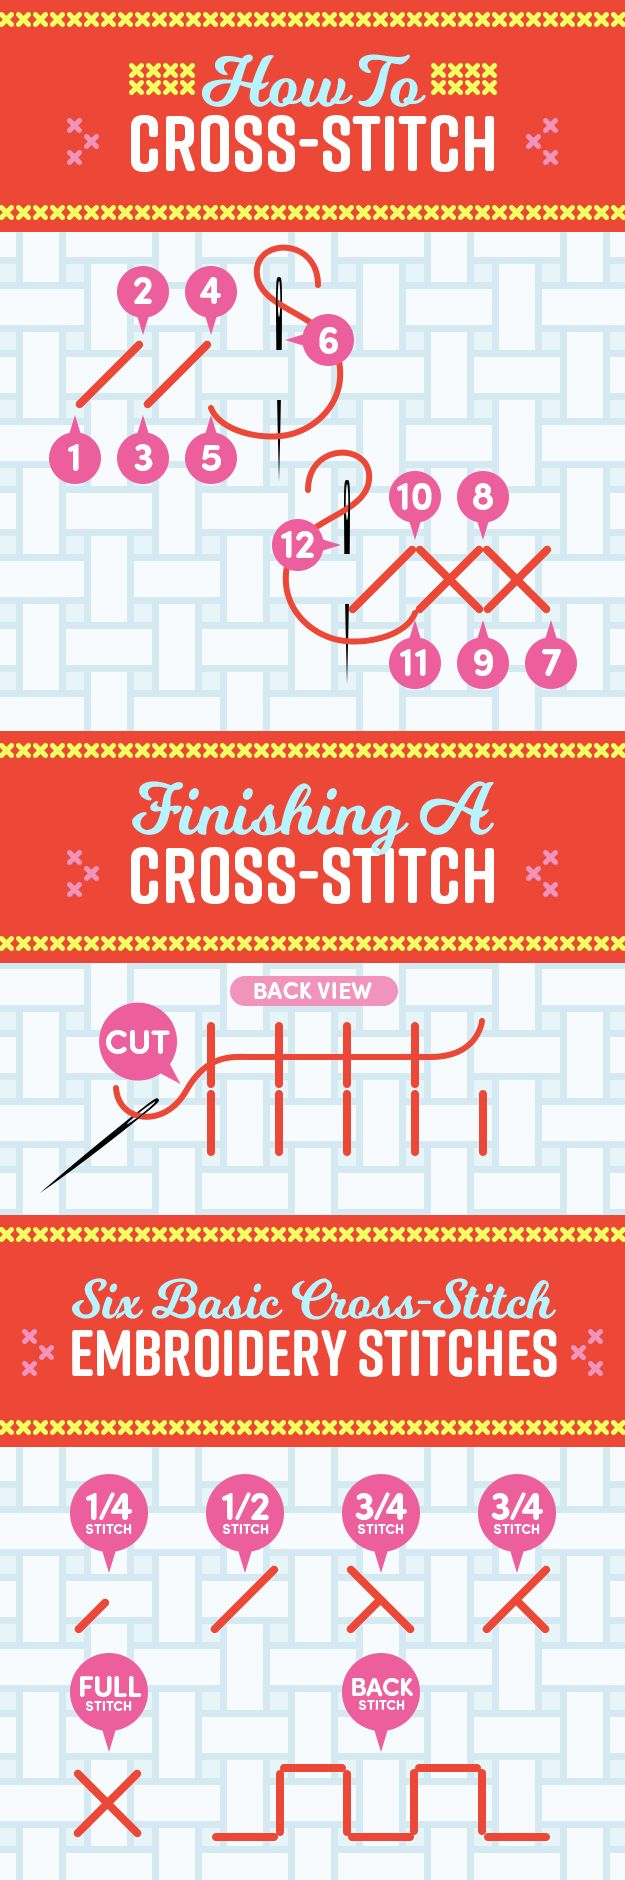 Learn the basics of cross-stitch types. | 29 Cross-Stitching Tips Every Beginner Should Know